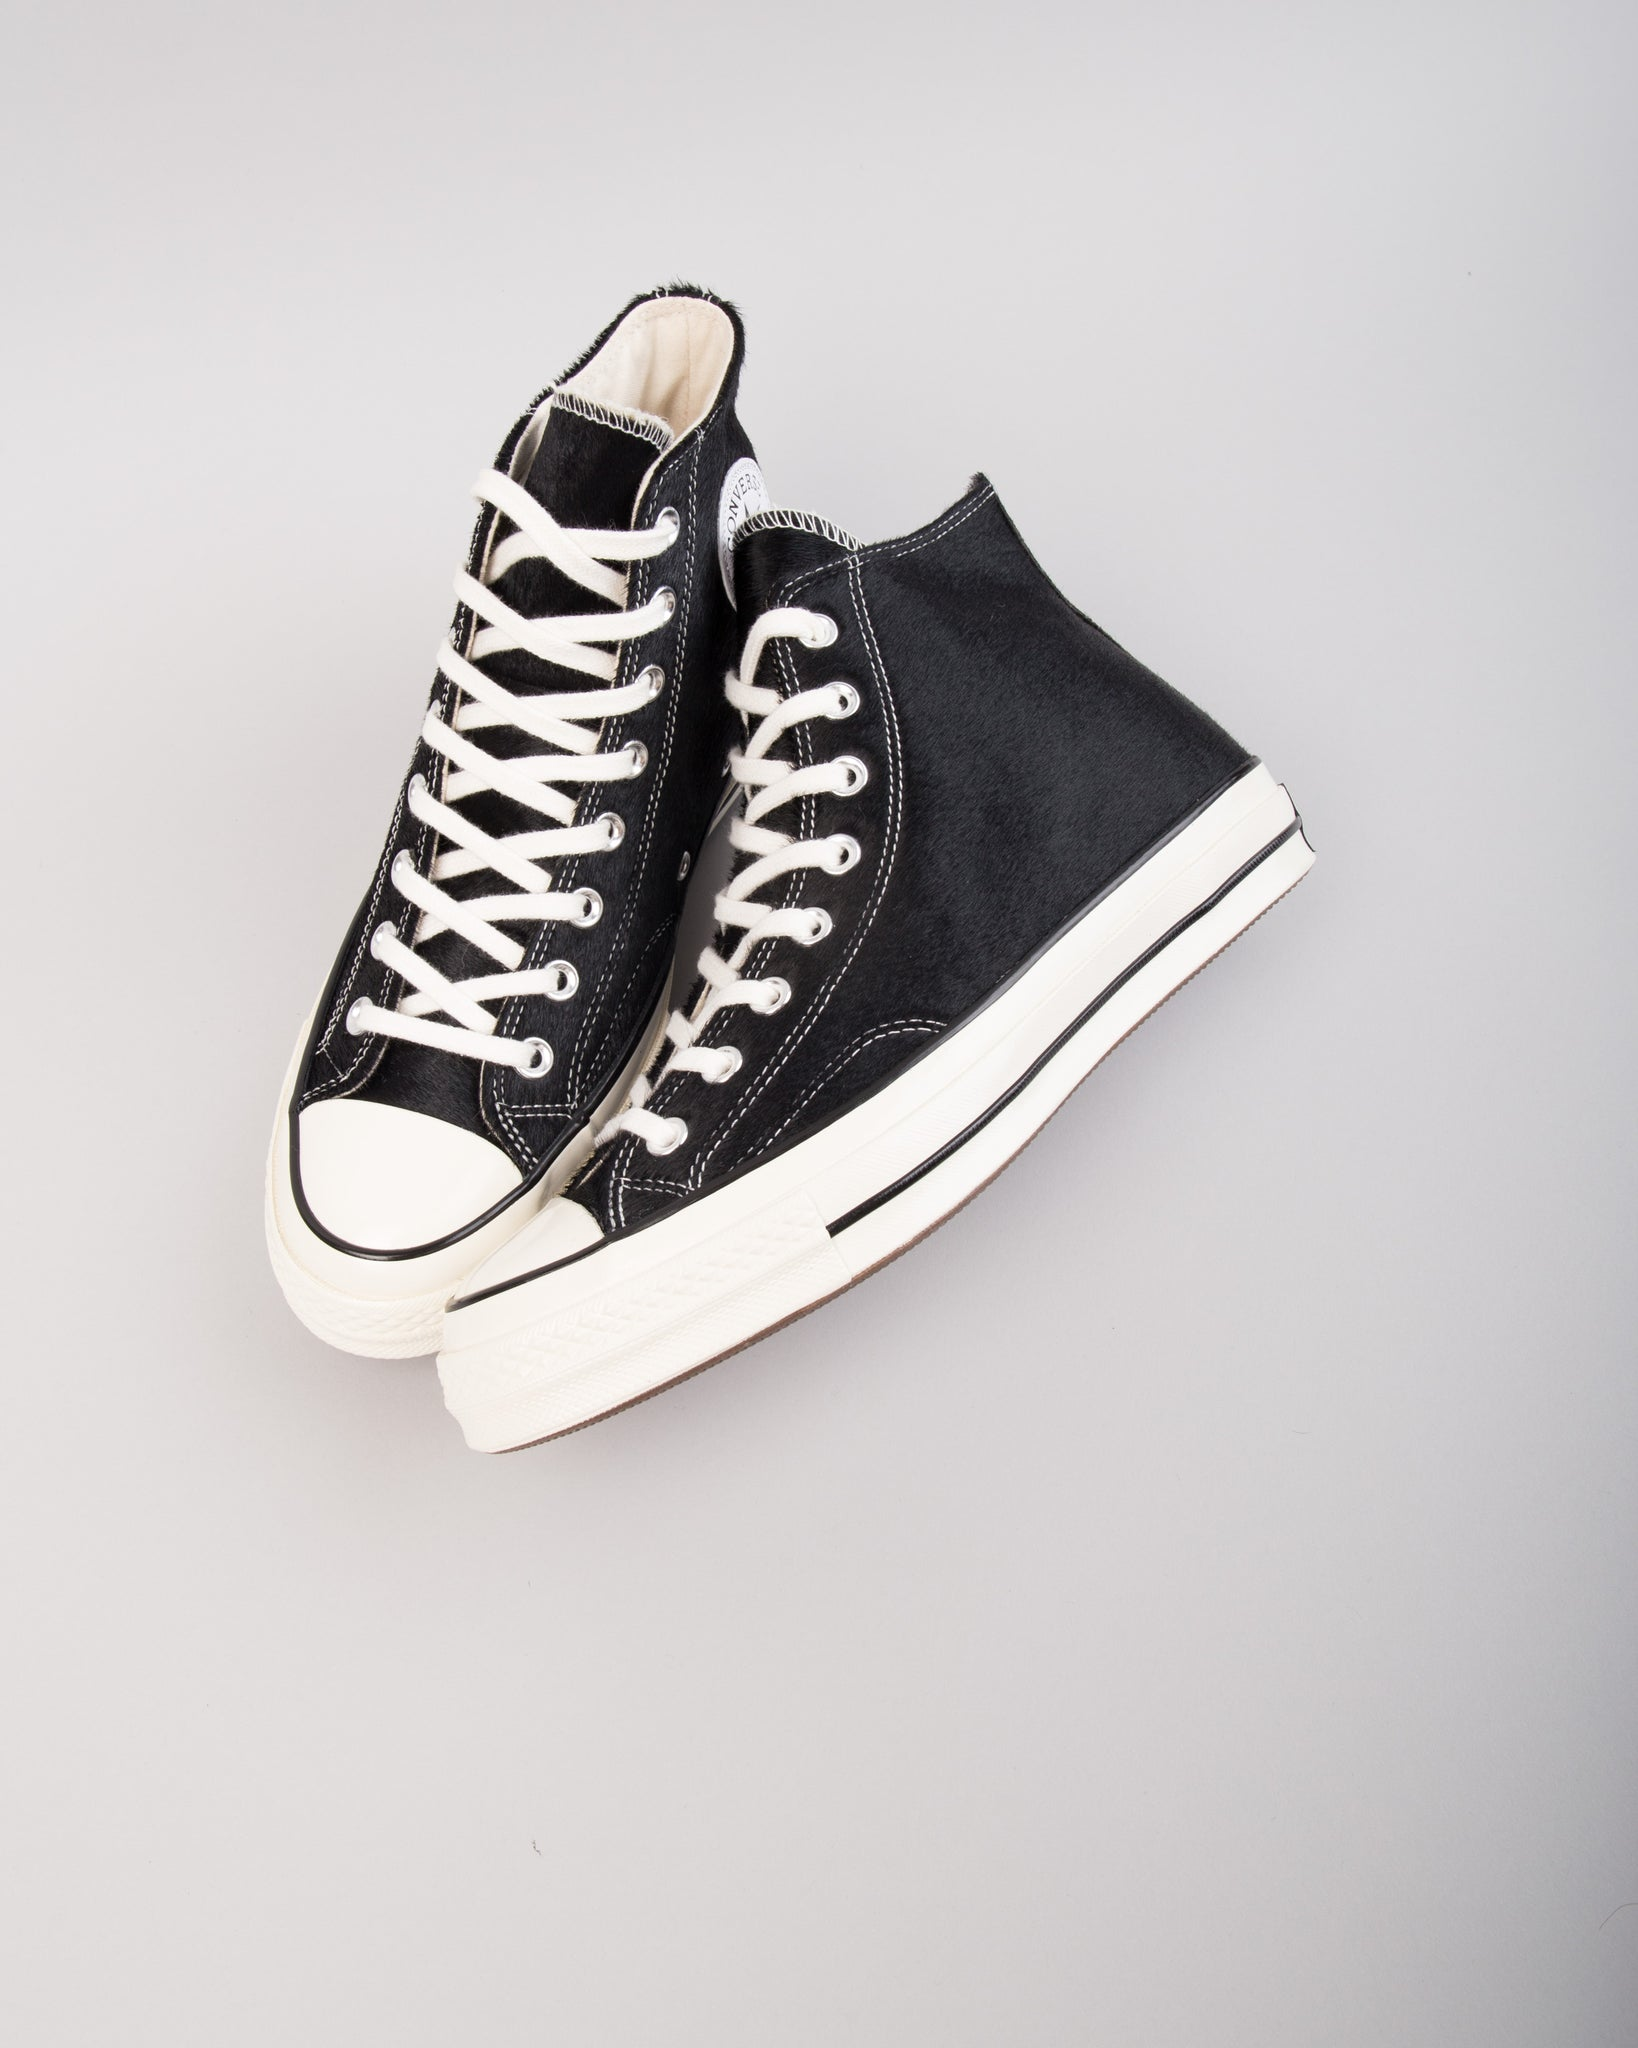 Chuck 70 HI Pony Black/Egret/Natural